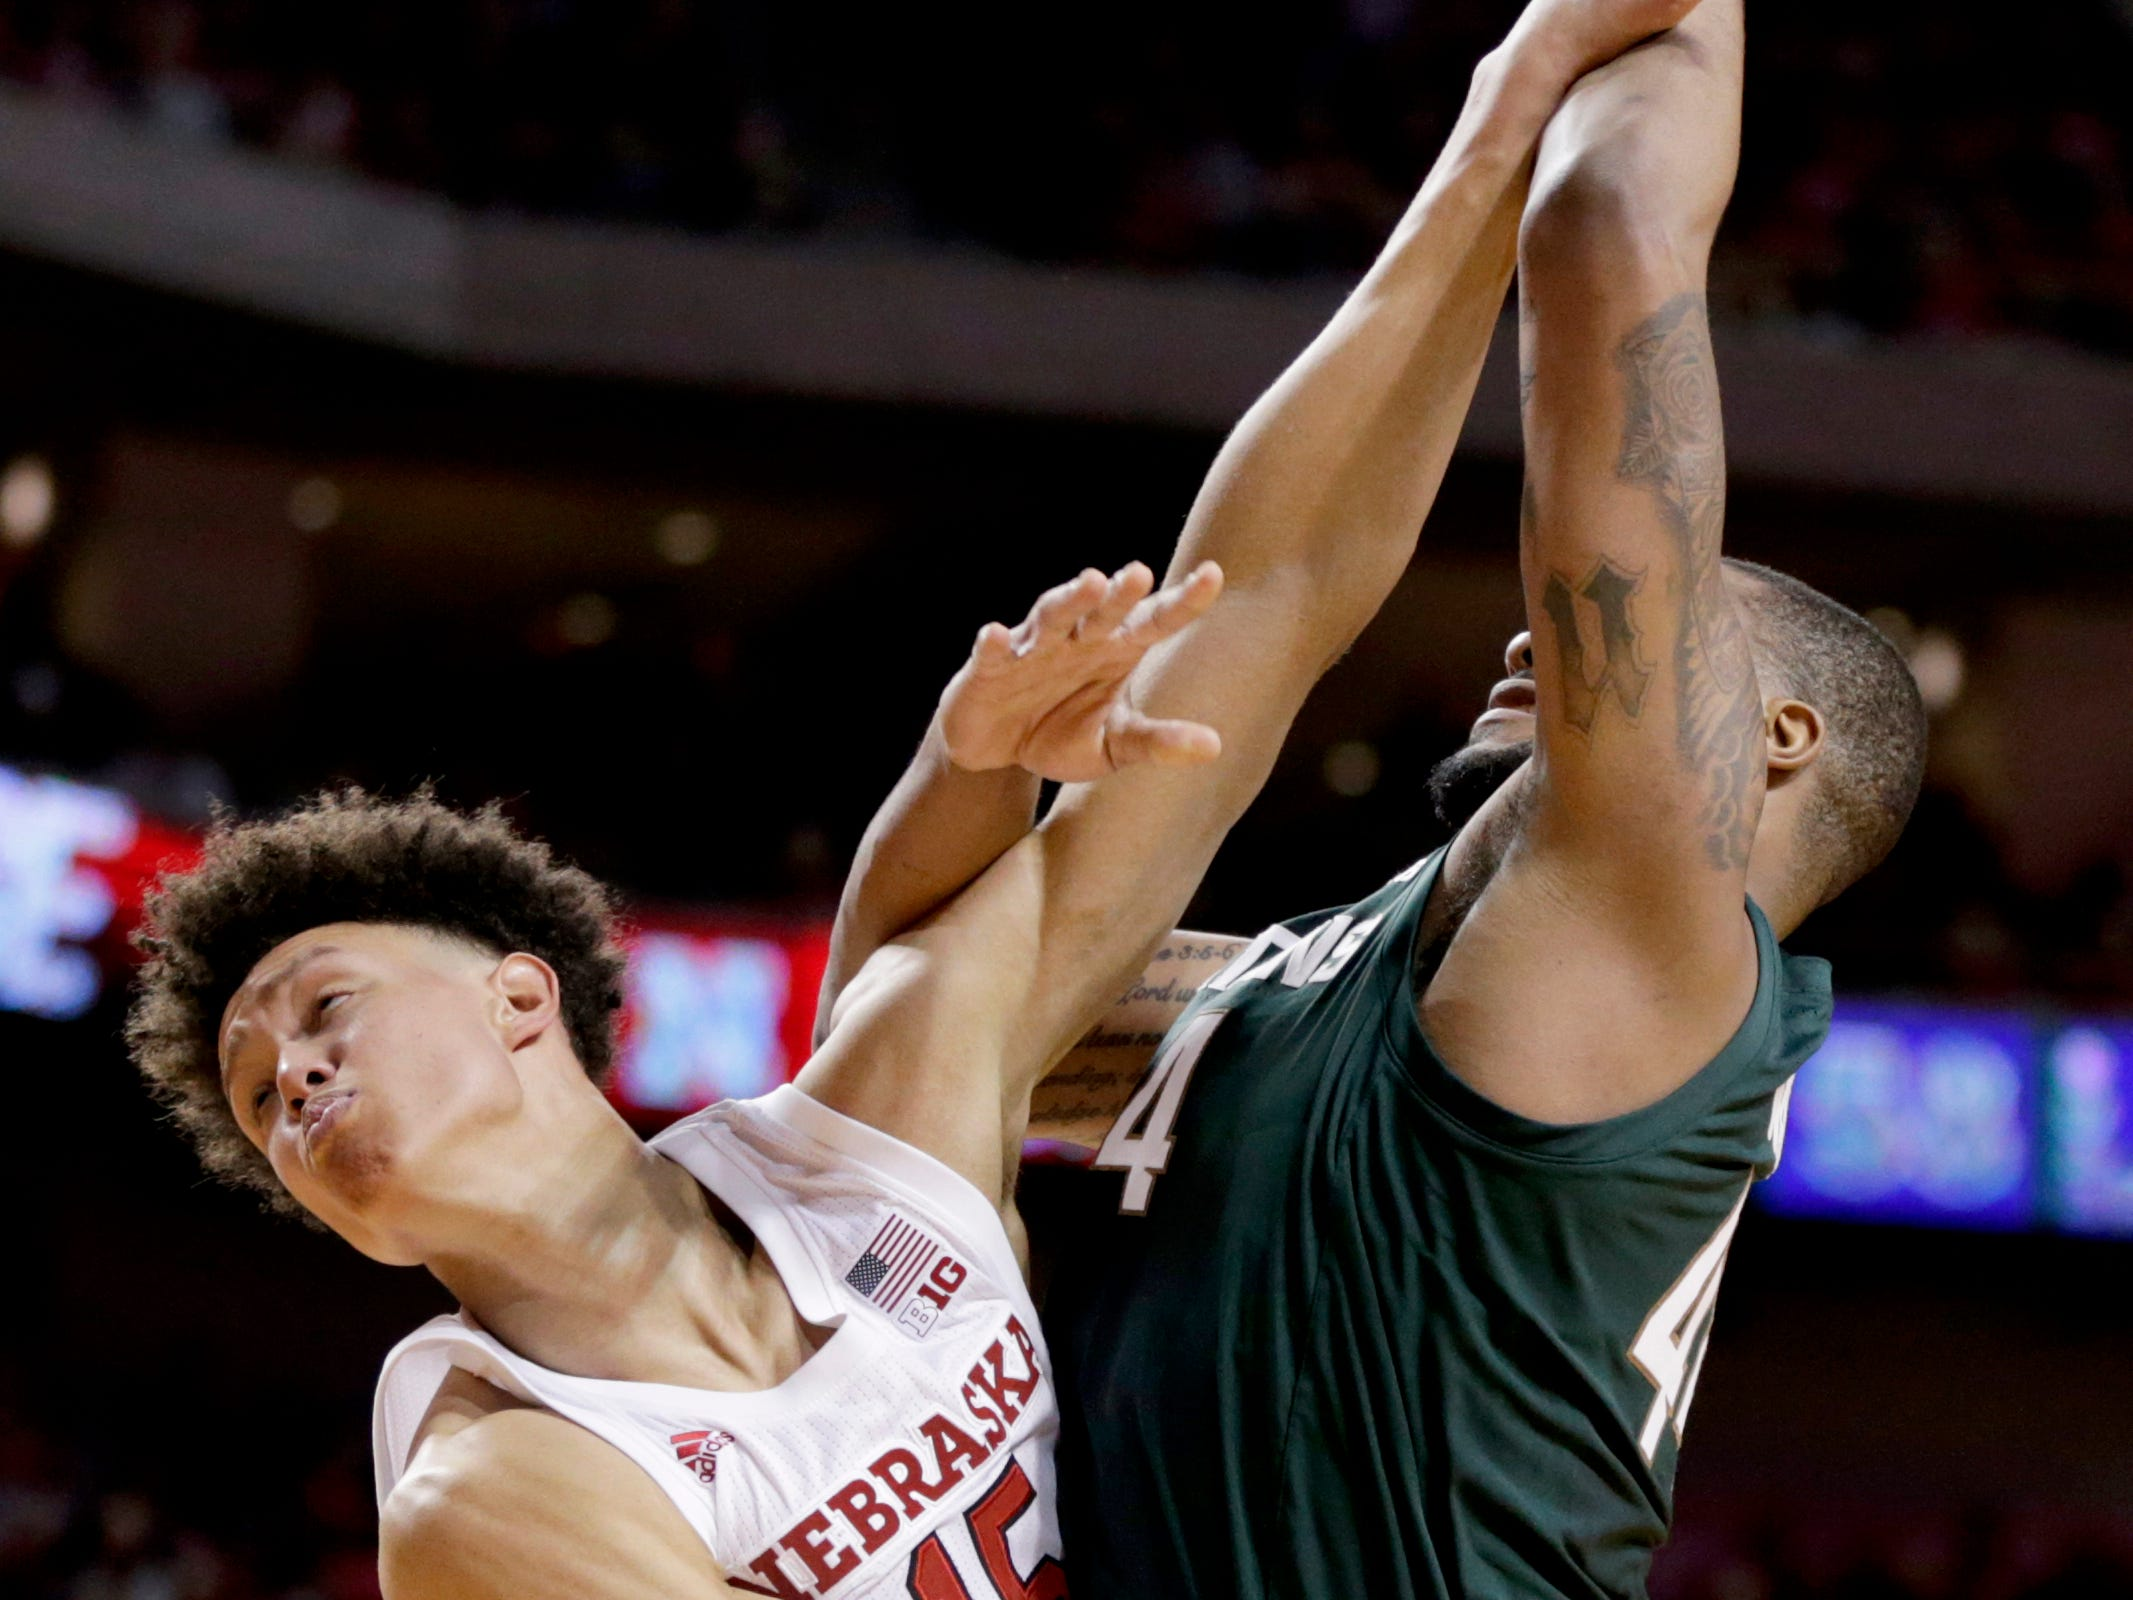 Nebraska's Isaiah Roby (15) commits his fifth foul as he tries to block a shot by Michigan State's Nick Ward (44) during the second half of an NCAA college basketball game in Lincoln, Neb., Thursday, Jan. 17, 2019. Michigan State won 70-64.